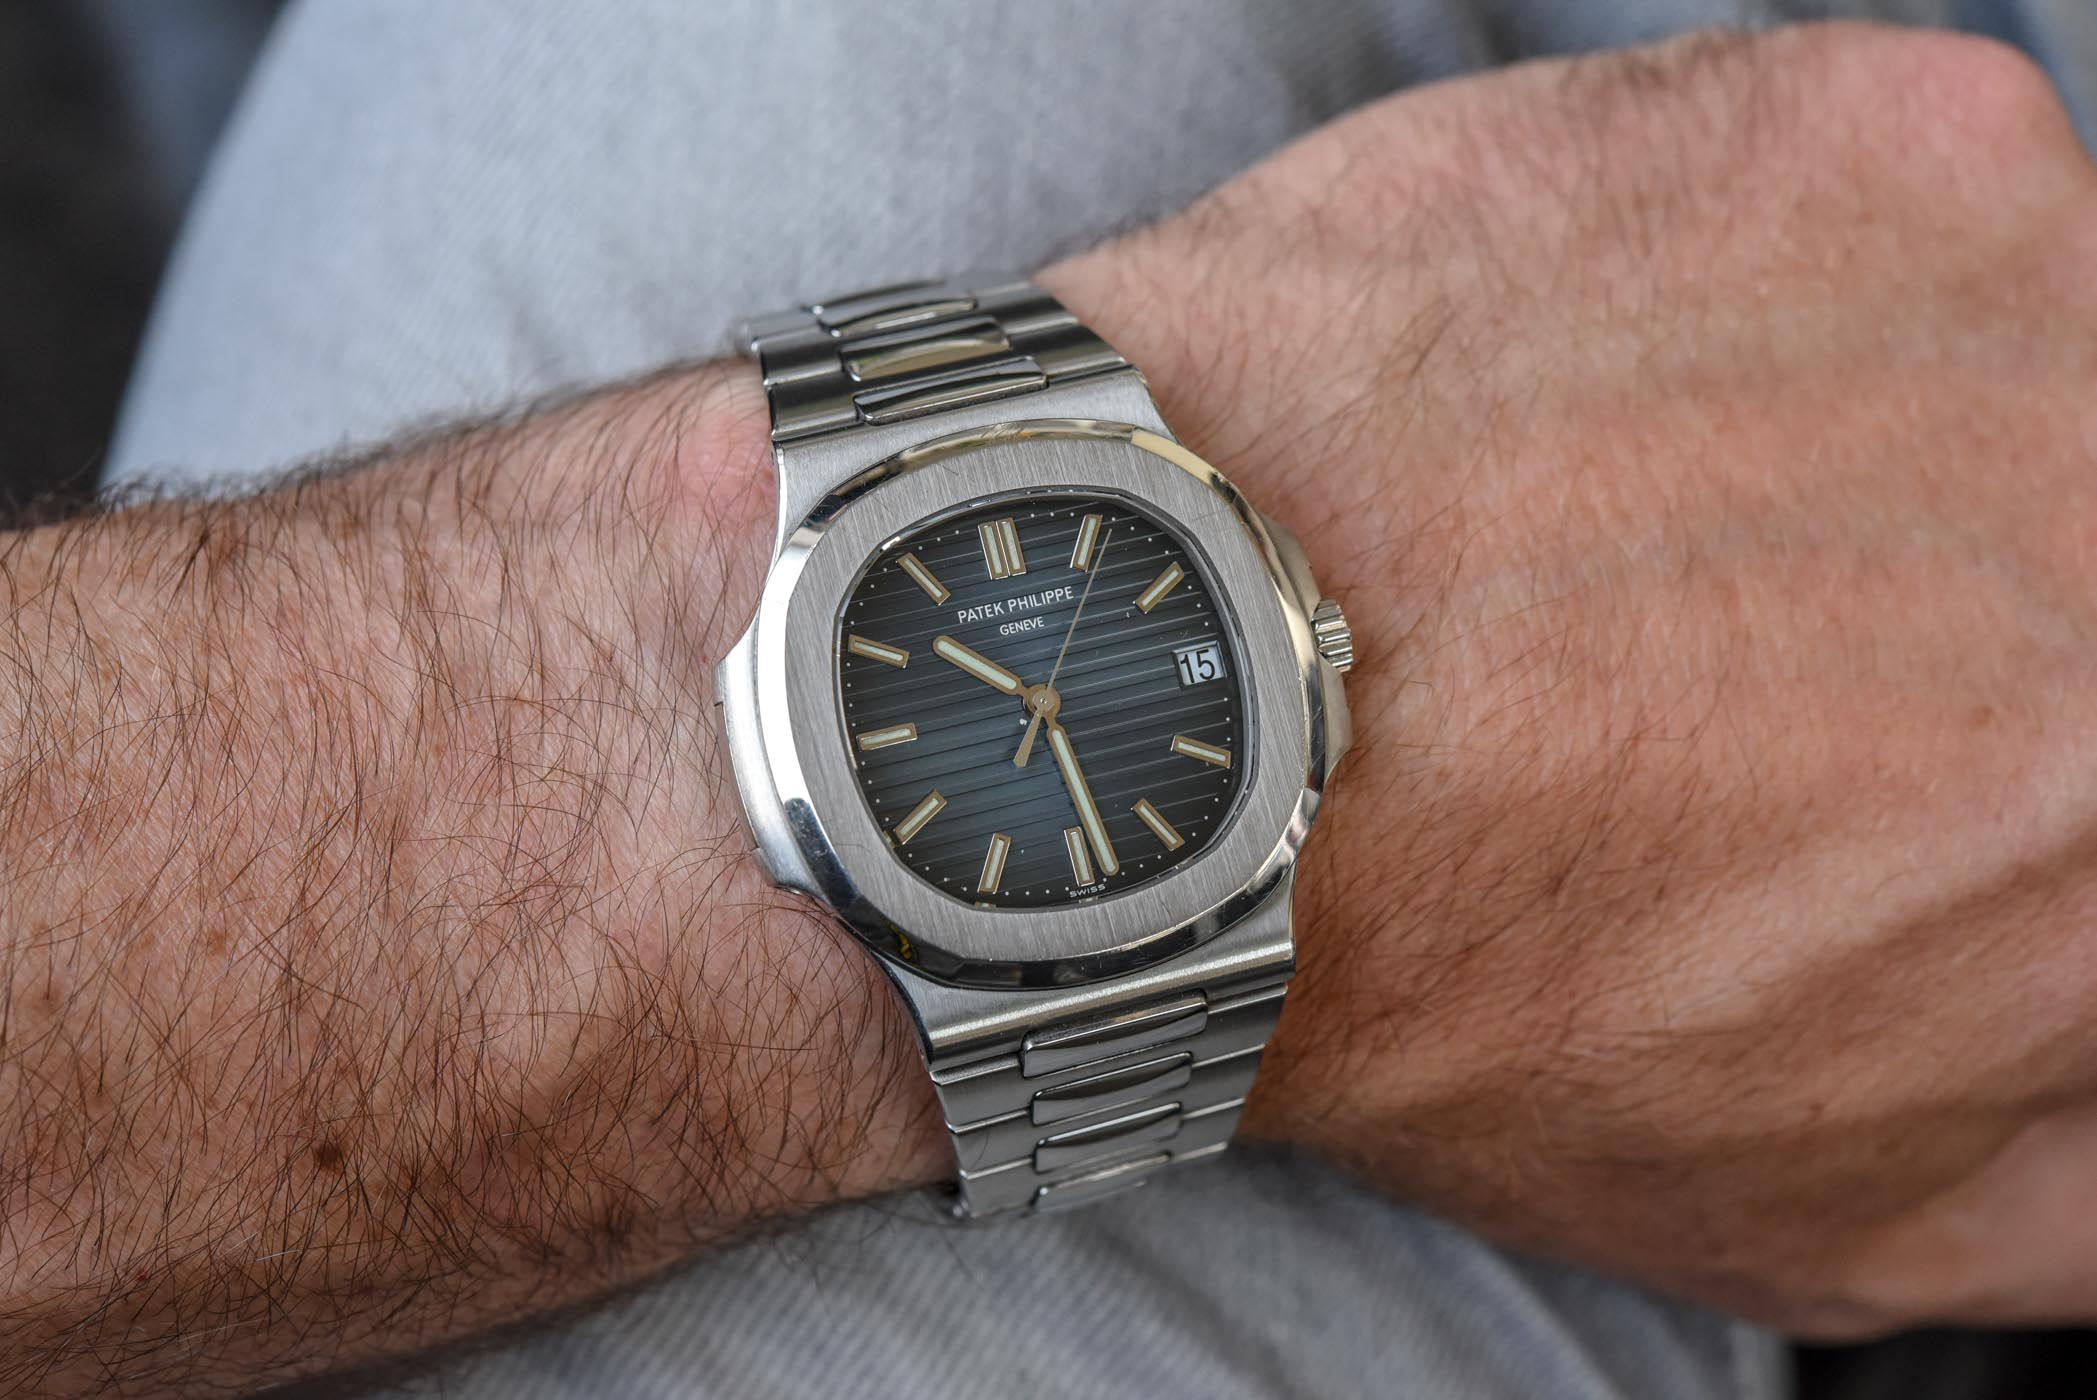 Thoughts on the Patek Philippe Nautilus ref 5711 (and why I didn't